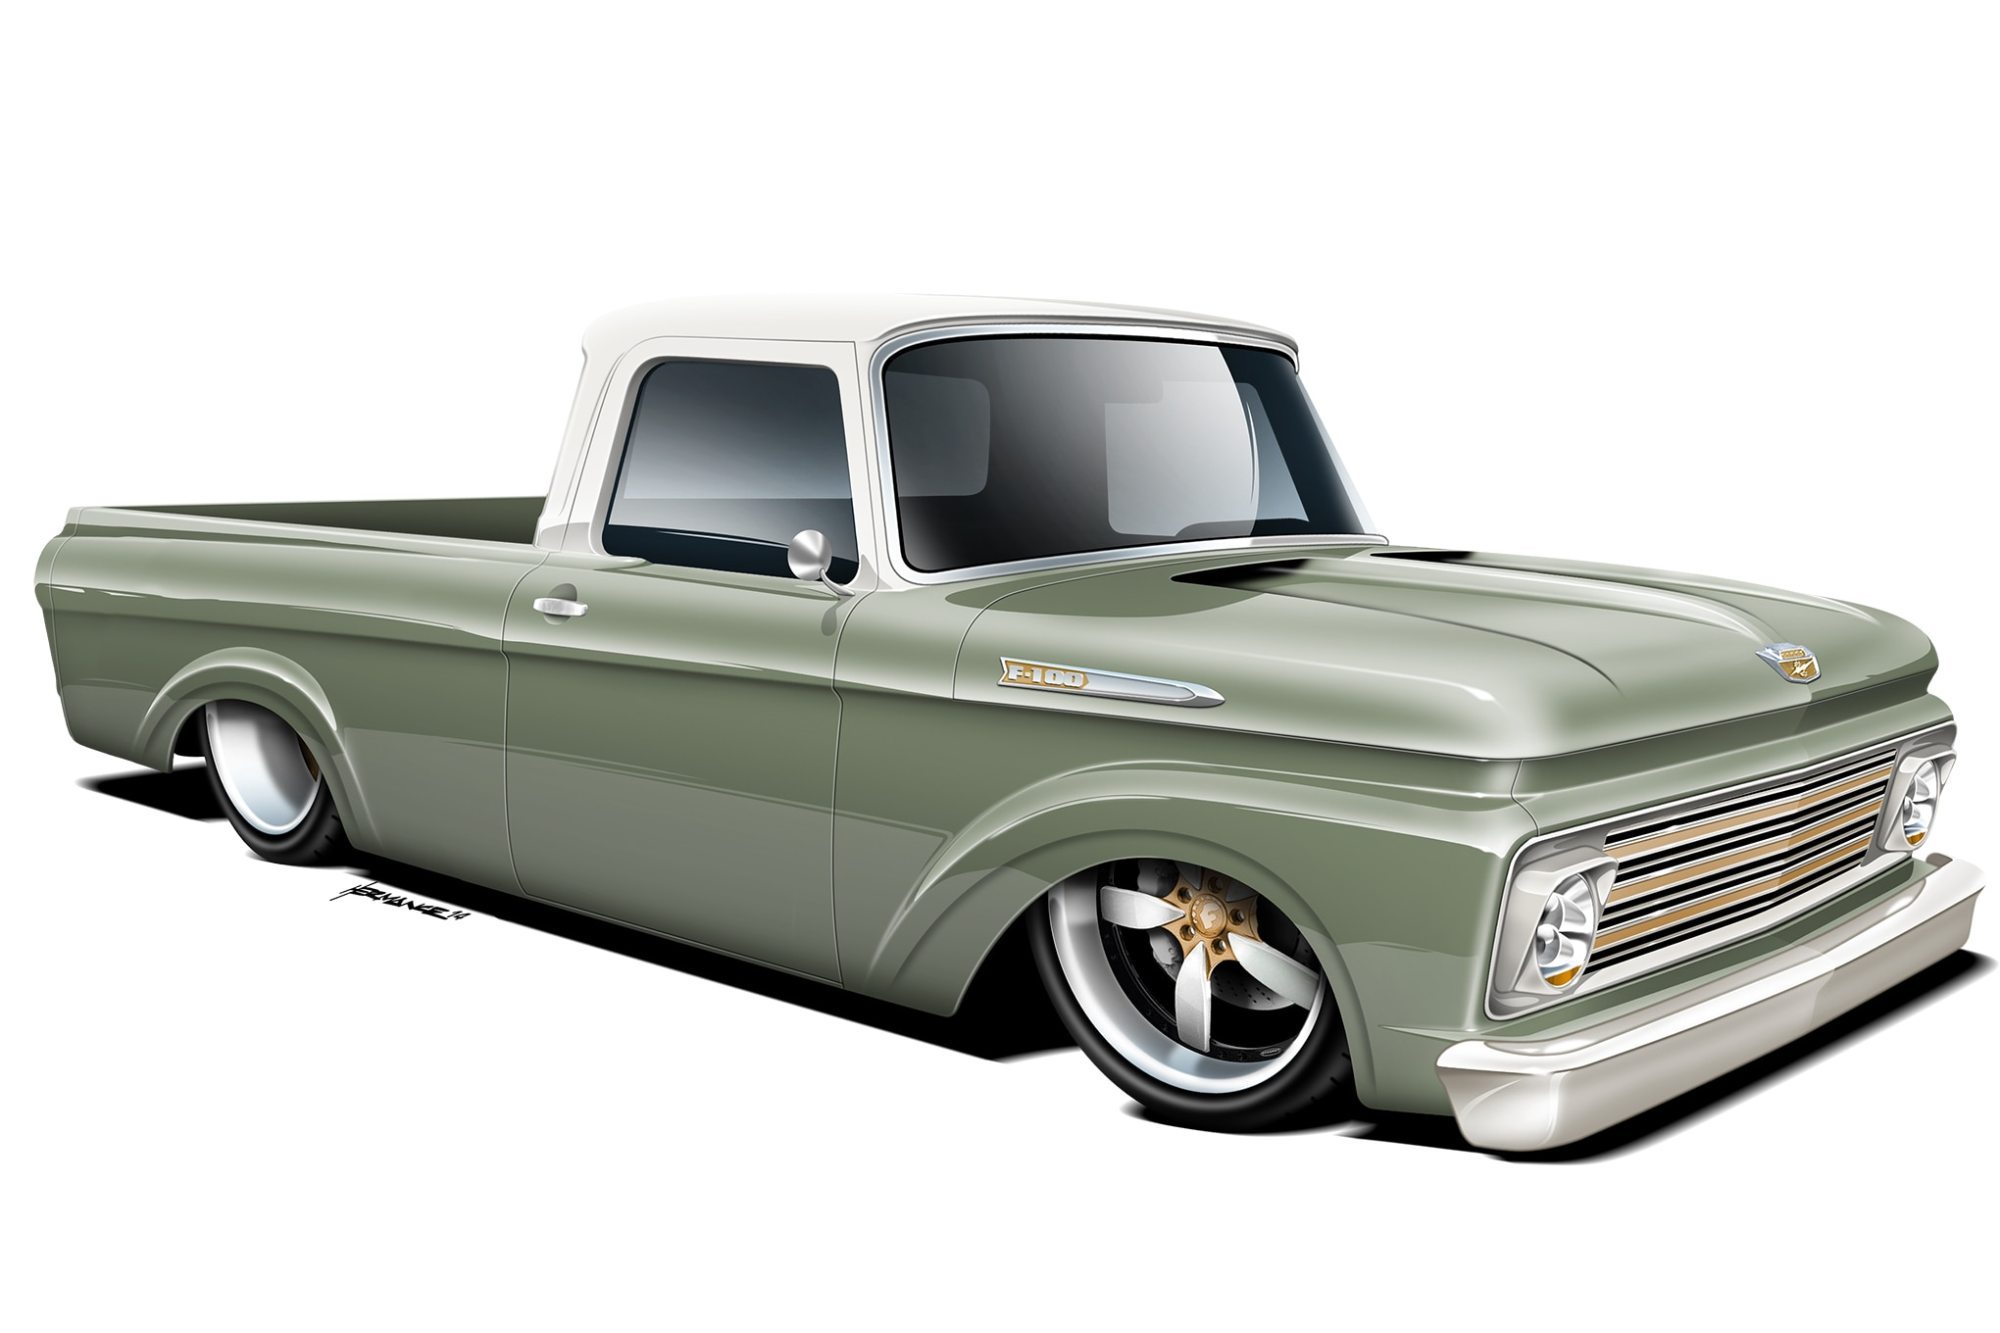 hight resolution of 02 1961 ford f100 rendering1